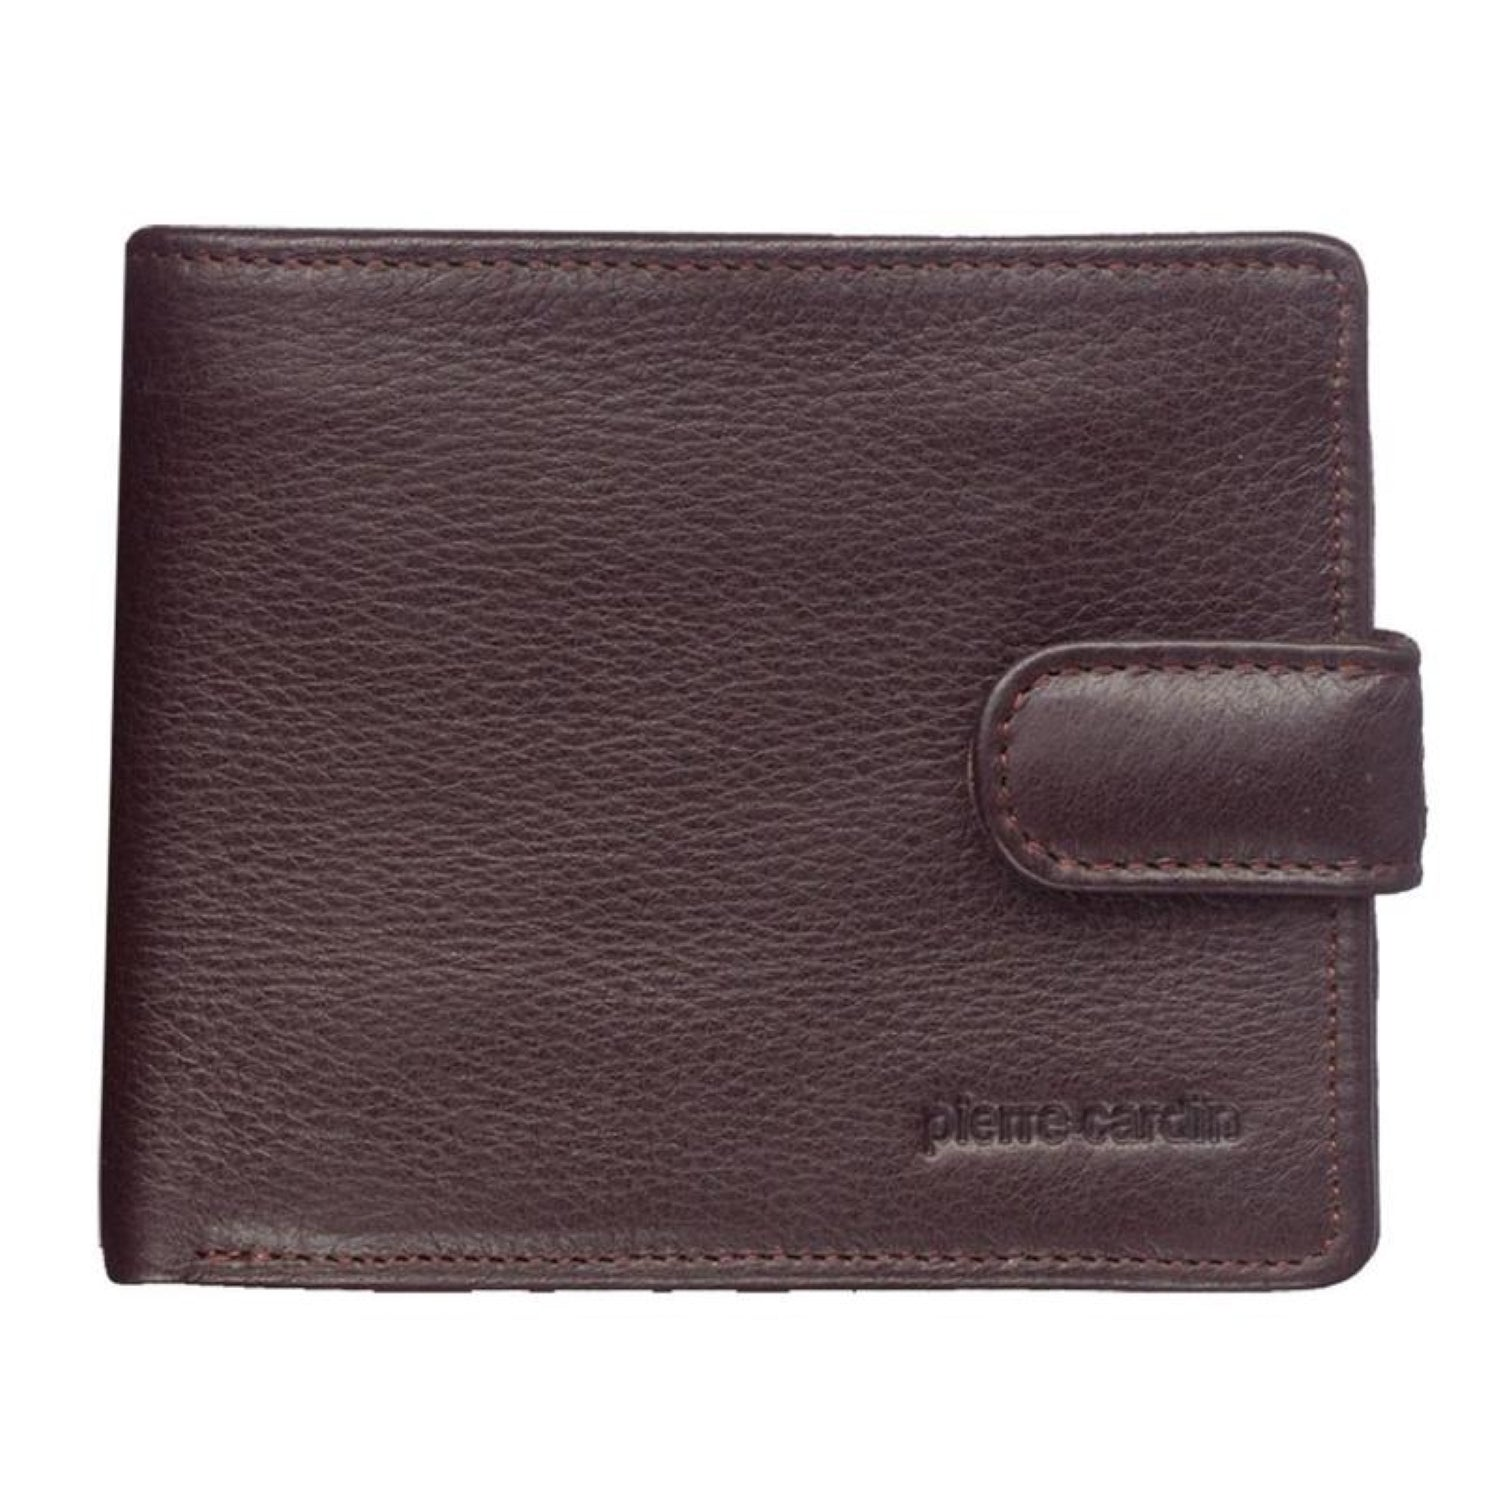 Pierre Cardin PC8874 BROWN MENS WALLET - RFID Italian Leather